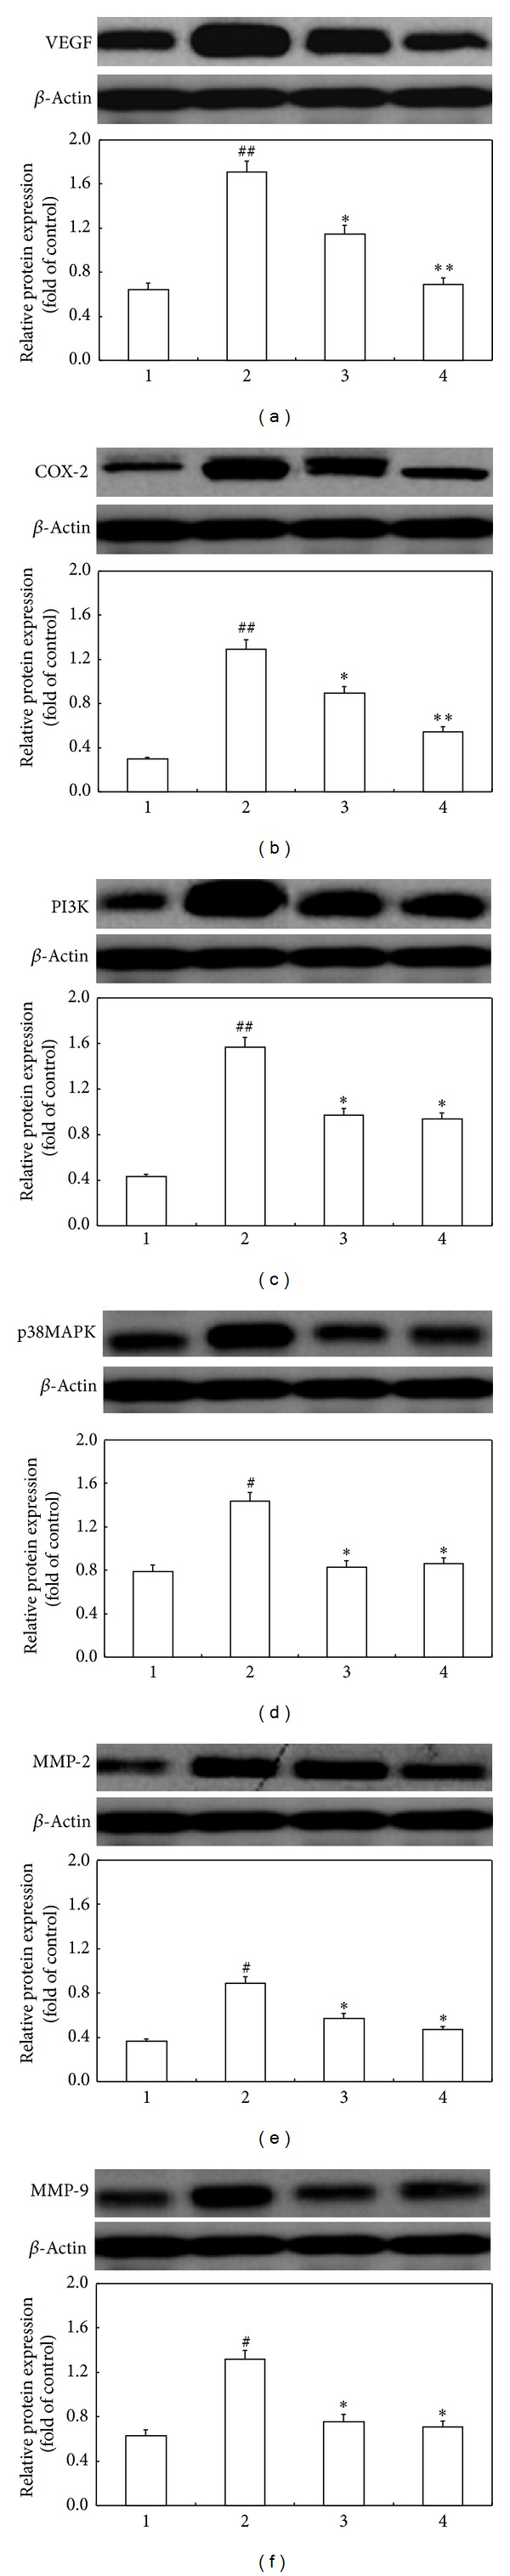 Naringenin/ β -CD complex significantly inhibits the protein expression of key mediators involved in the pathogenesis of CNV in rats. (a)–(f) are western blot analyses for protein levels of VEGF, COX-2, PI3K, p38MAPK, MMP-2, and MMP-9 and their quantification. β -Actin was used as an invariant control for equal loading. Group 1: normal rats; group 2: CNV rats without treatment; group 3: CNV rats with naringenin treatment; group 4: CNV rats with naringenin/ β -CD complex treatment. Data are expressed as mean ± SD; # P